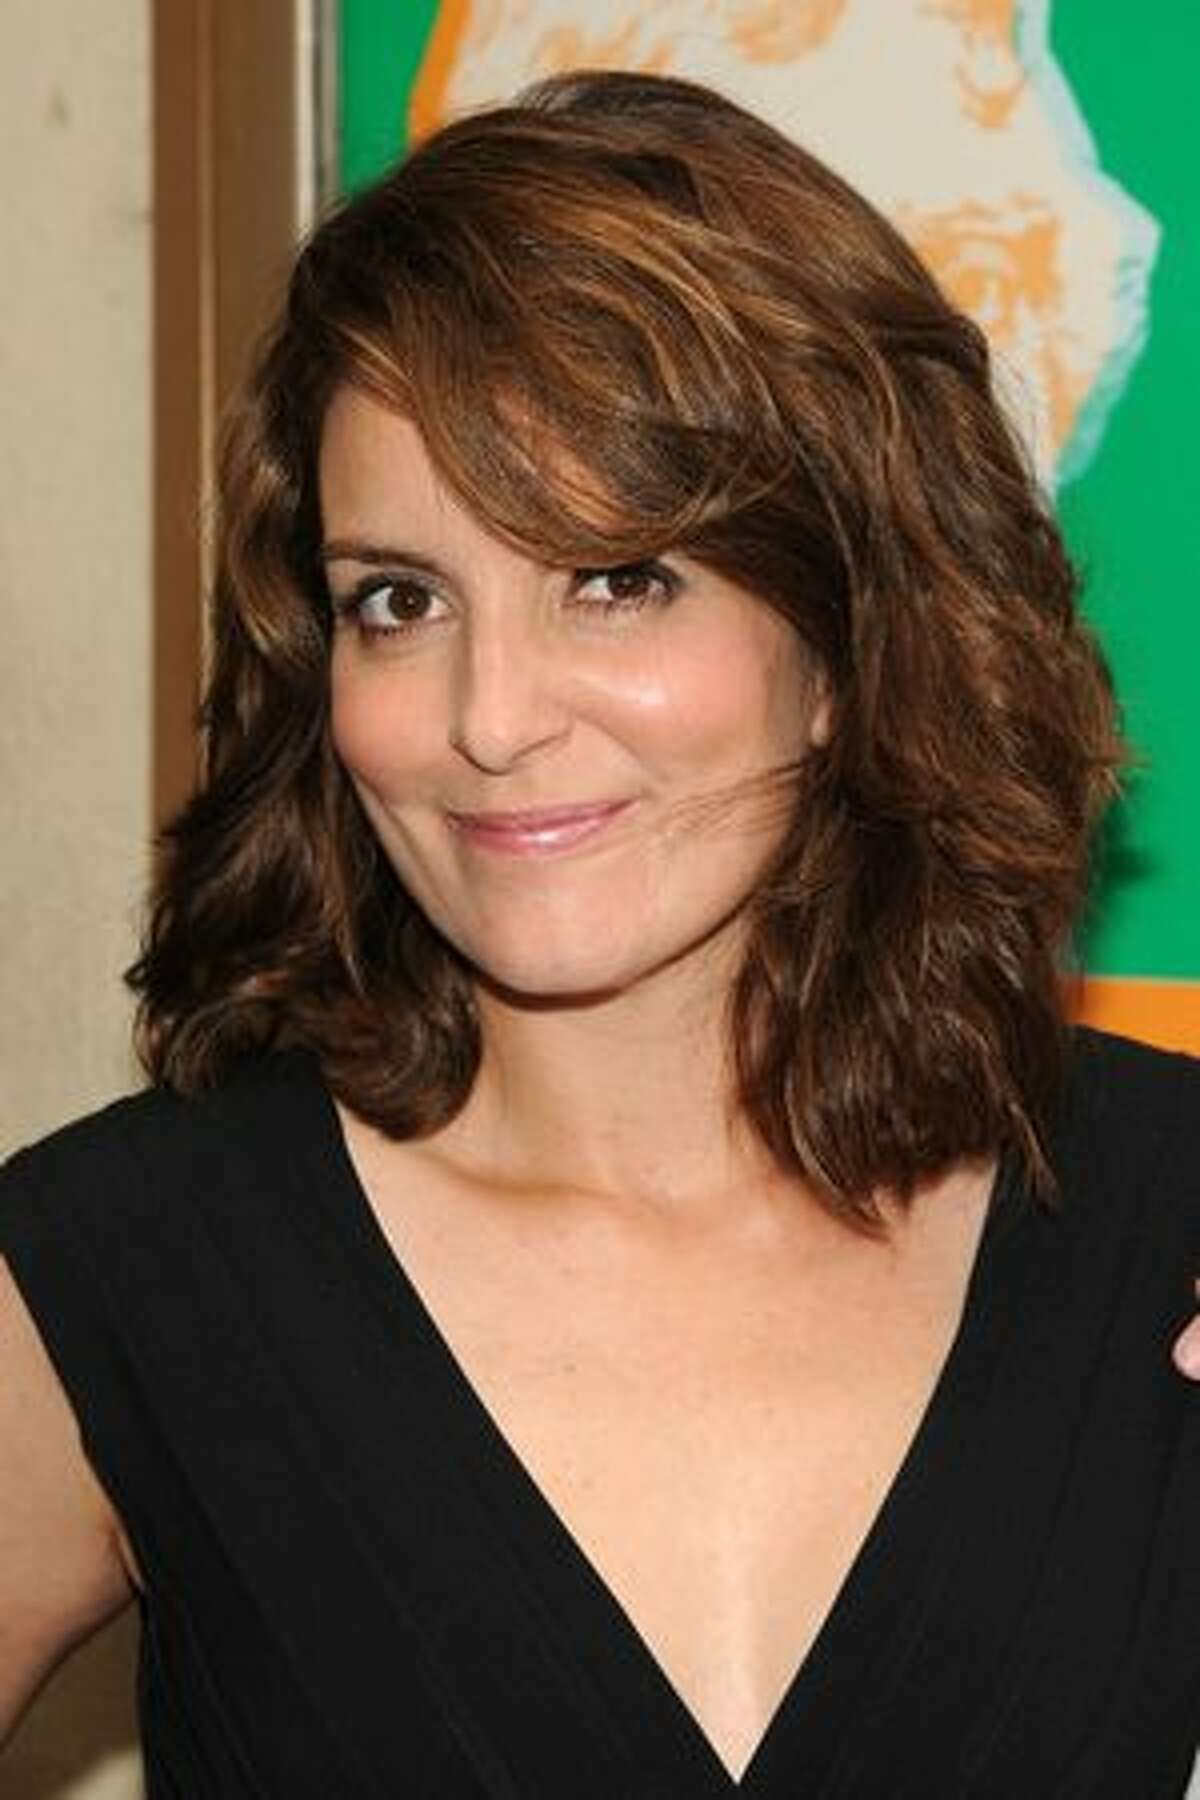 Actress Tina Fey attends the opening night of